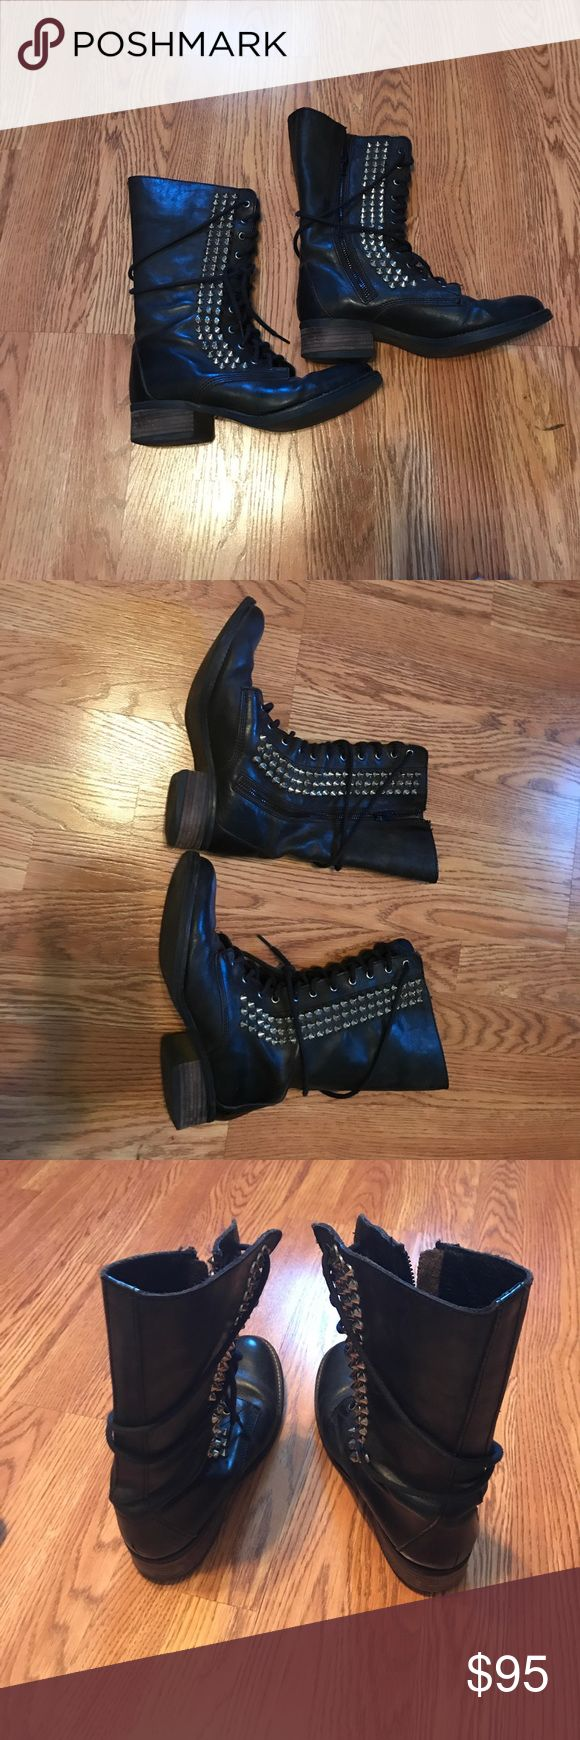 Steve Madden Studded Combat Boots Steve Madden Studded Combat Boots. Black with Silver studs. In excellent condition. Very sturdy, clean and comfortable. Zippers work perfectly. No tips or tears. Steve Madden Shoes Combat & Moto Boots